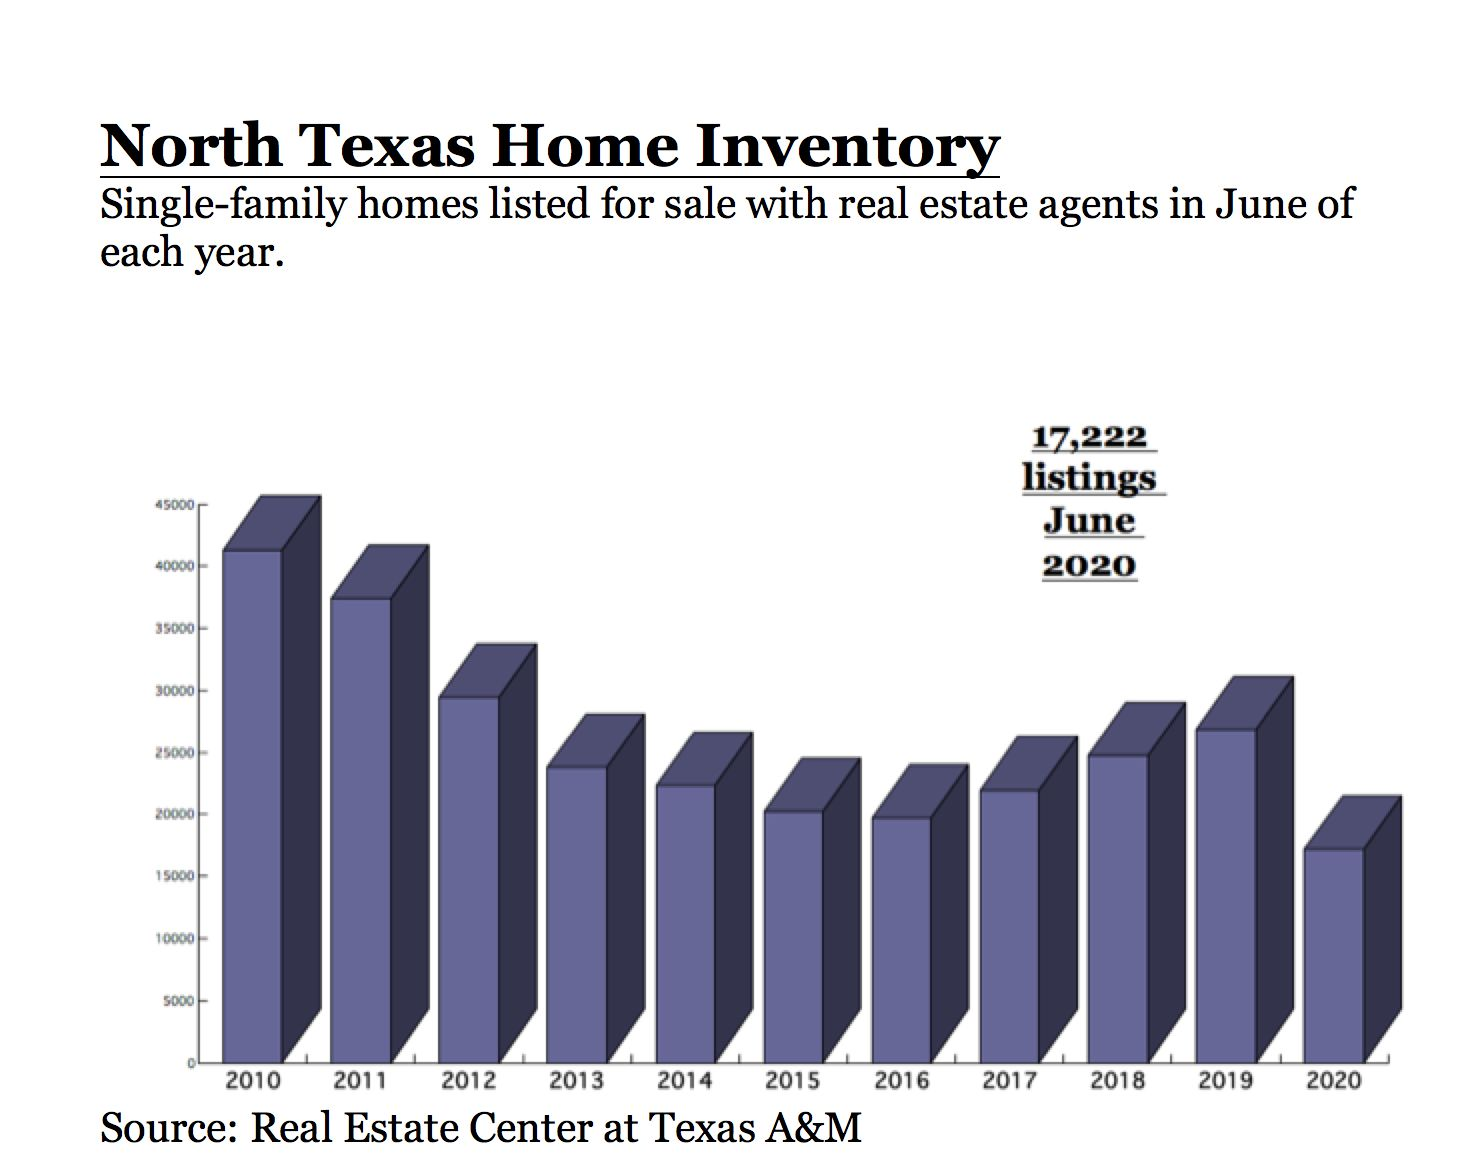 North Texas home listings are at the lowest point in more than a decade for June.